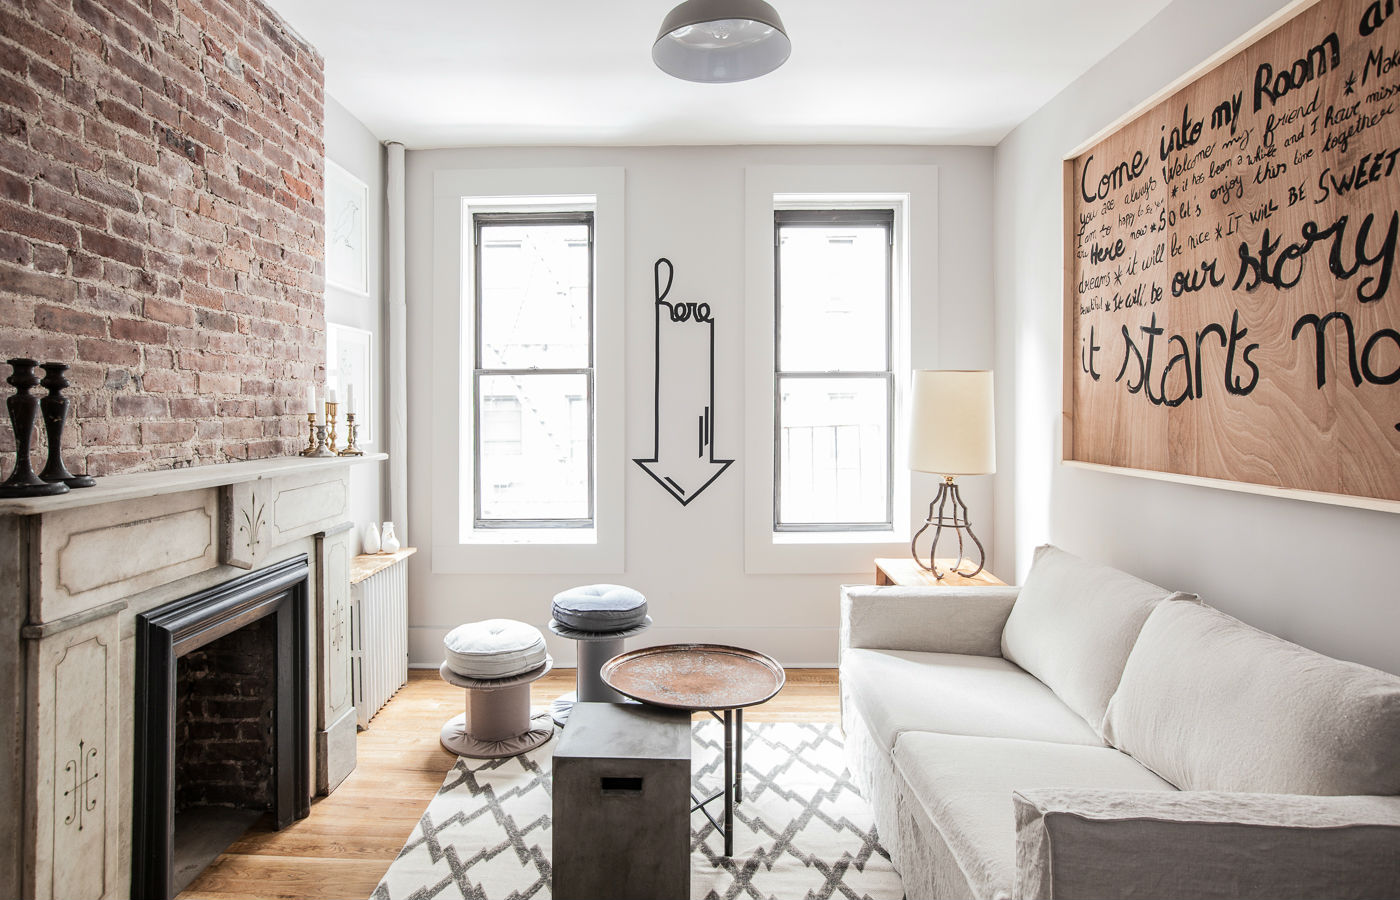 an east nyc curbed makes statement a s livingroom house home the inside designer on and lower anderson new campbell york tim designers debonair calls side city tour interior